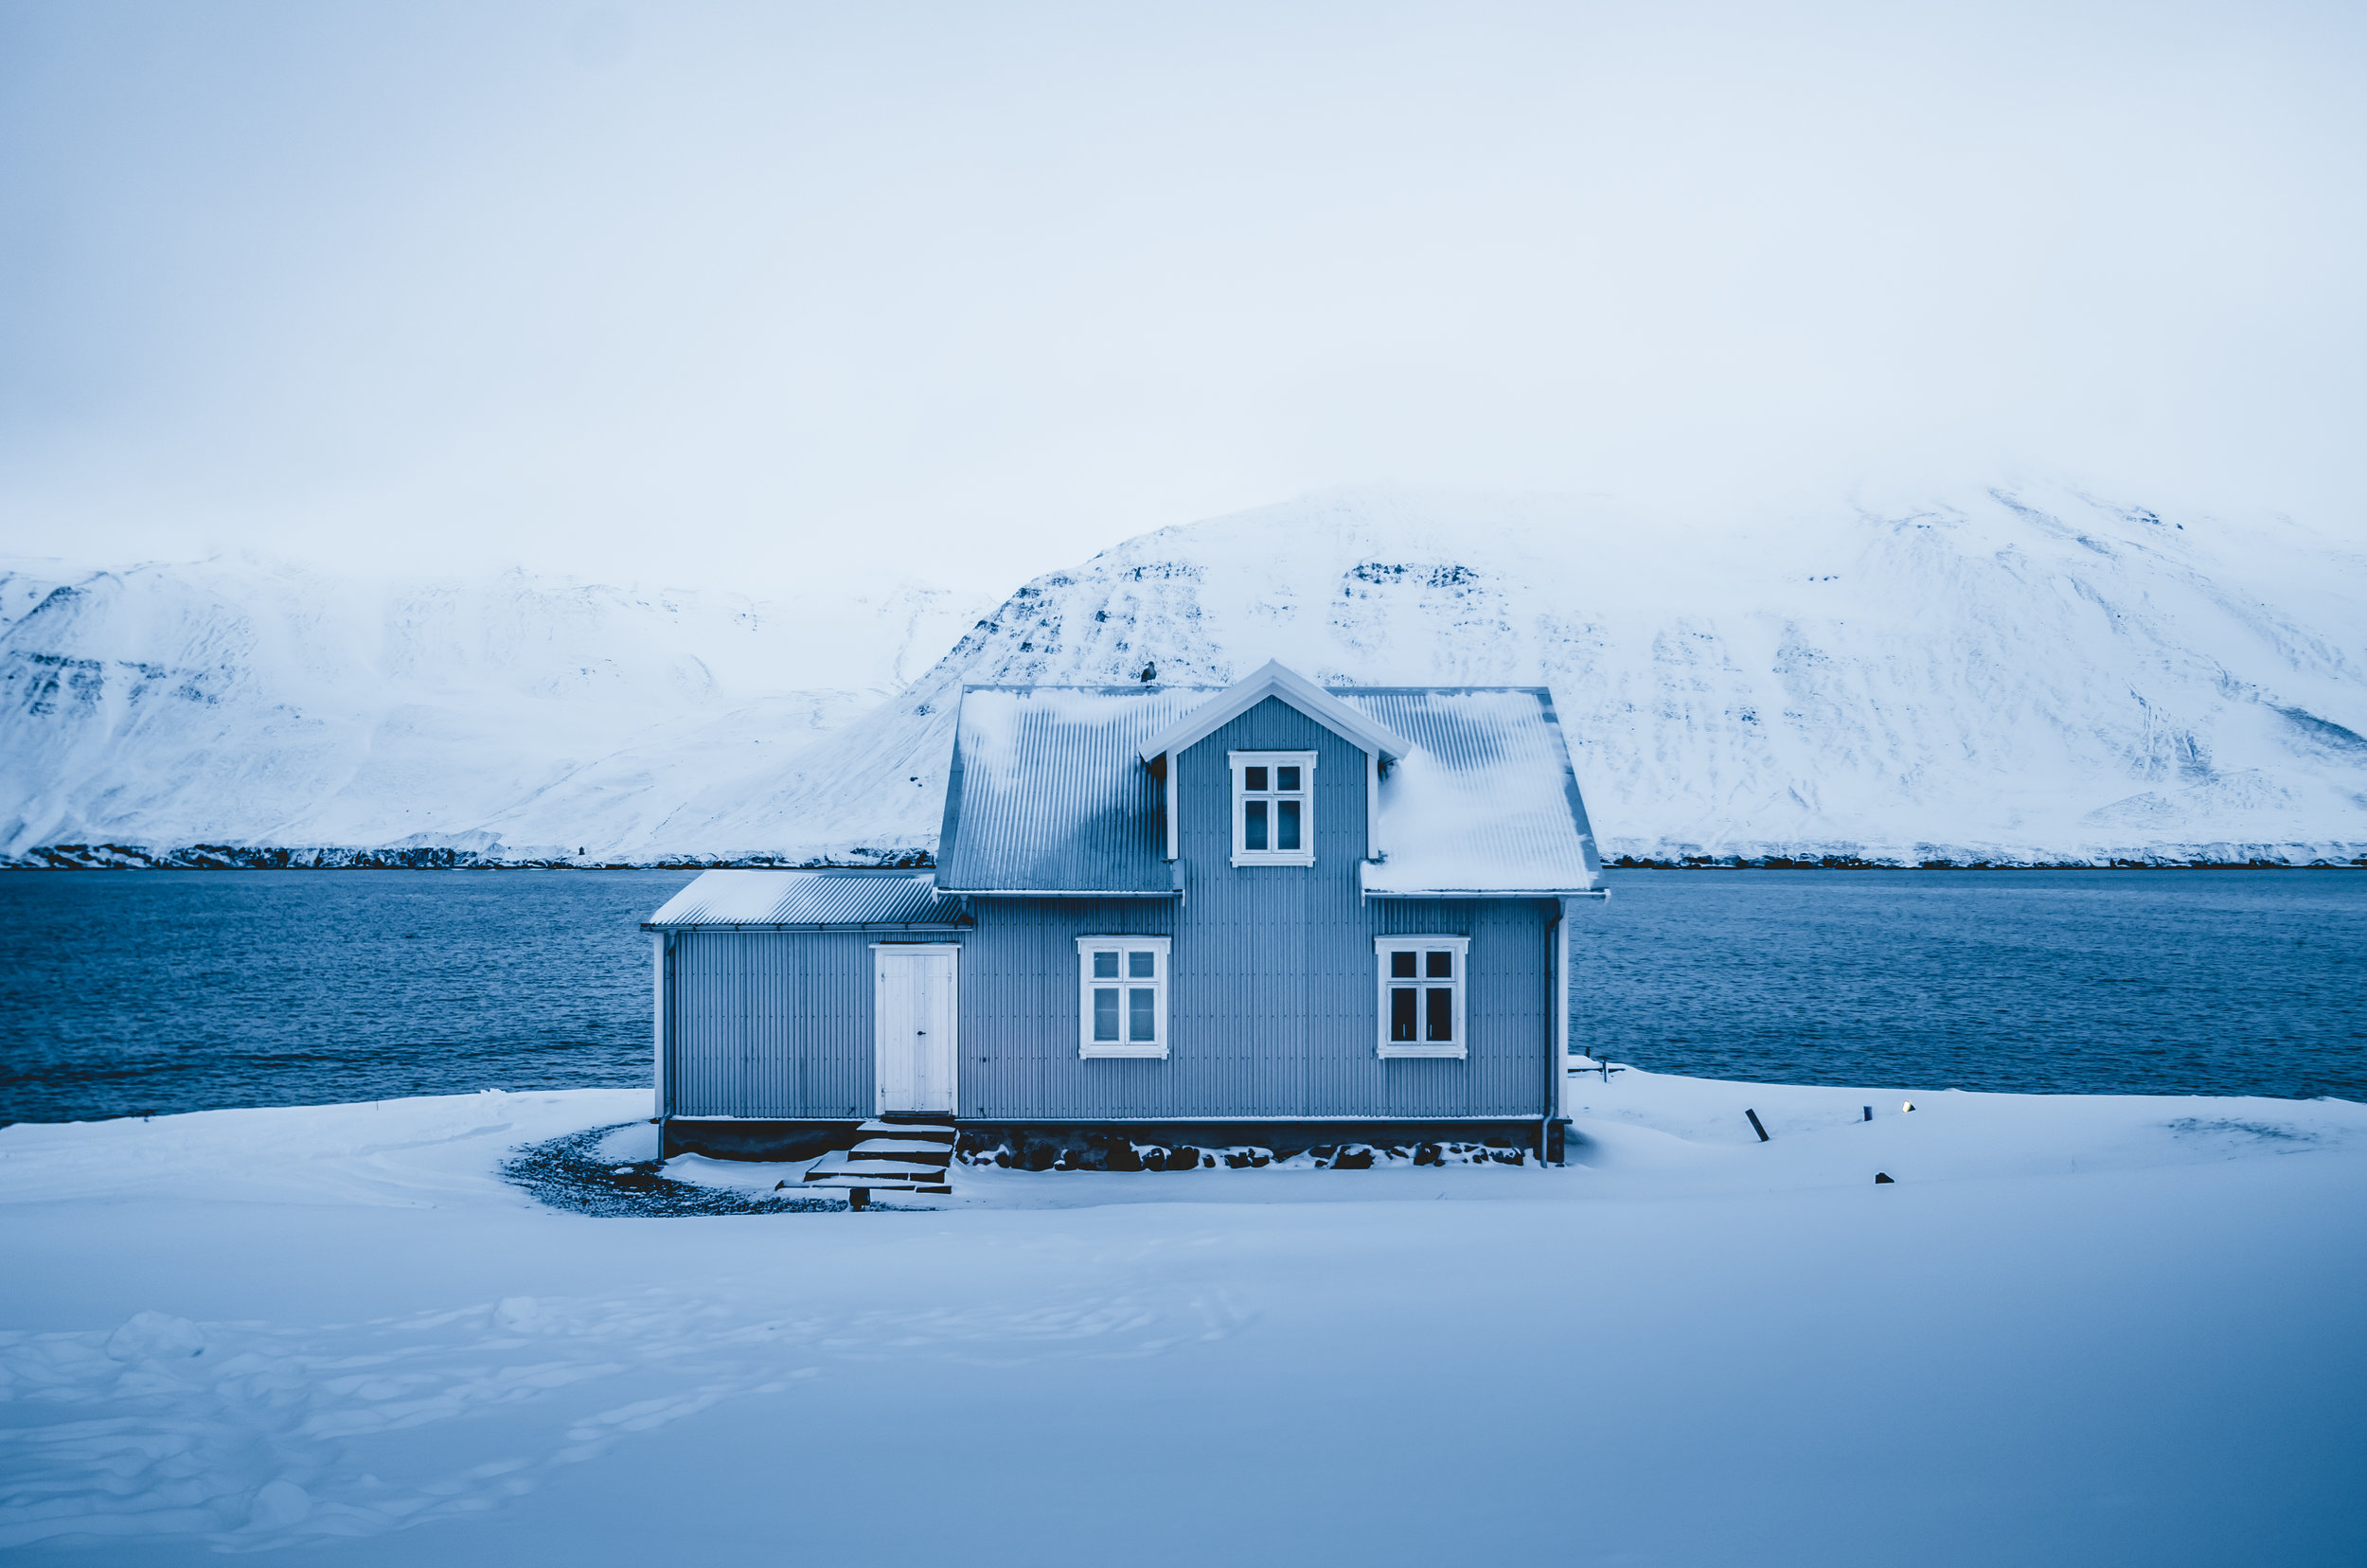 Photo of a house during the winter months in Iceland, photographed using a landscape (horizontal) photo composition.